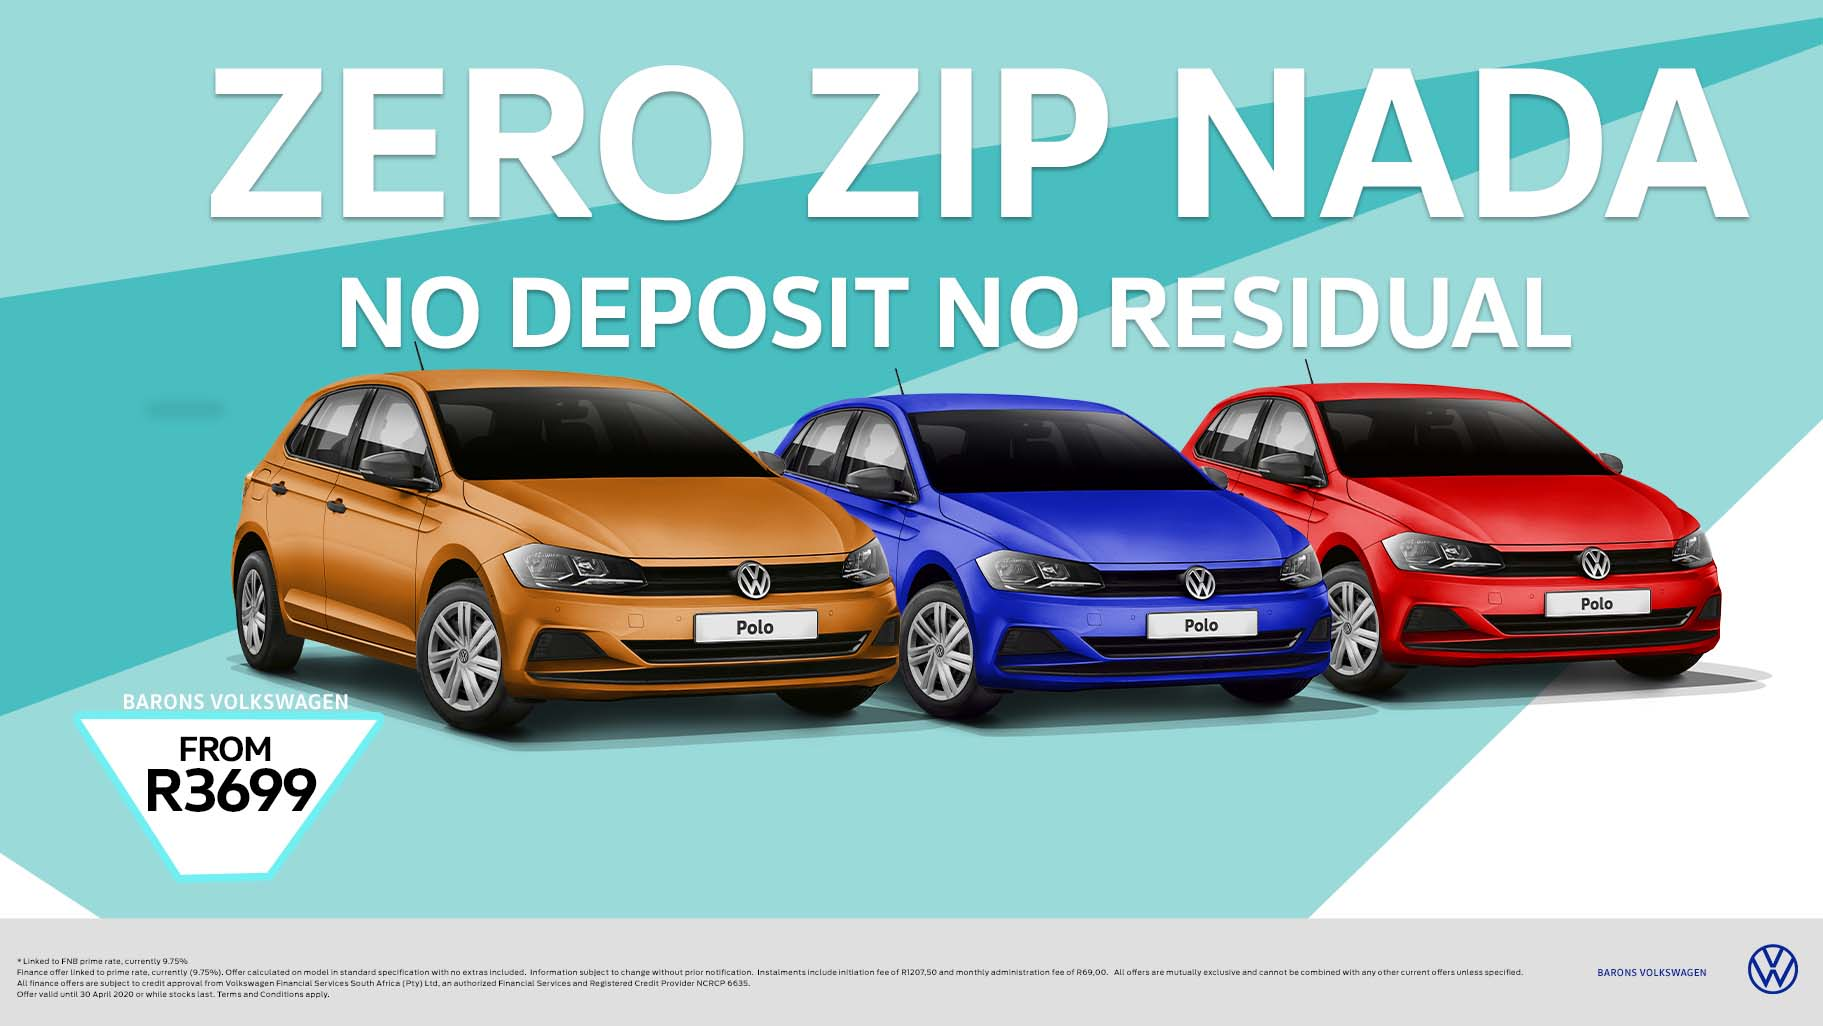 Barons Durban VW no deposit Polo car offer